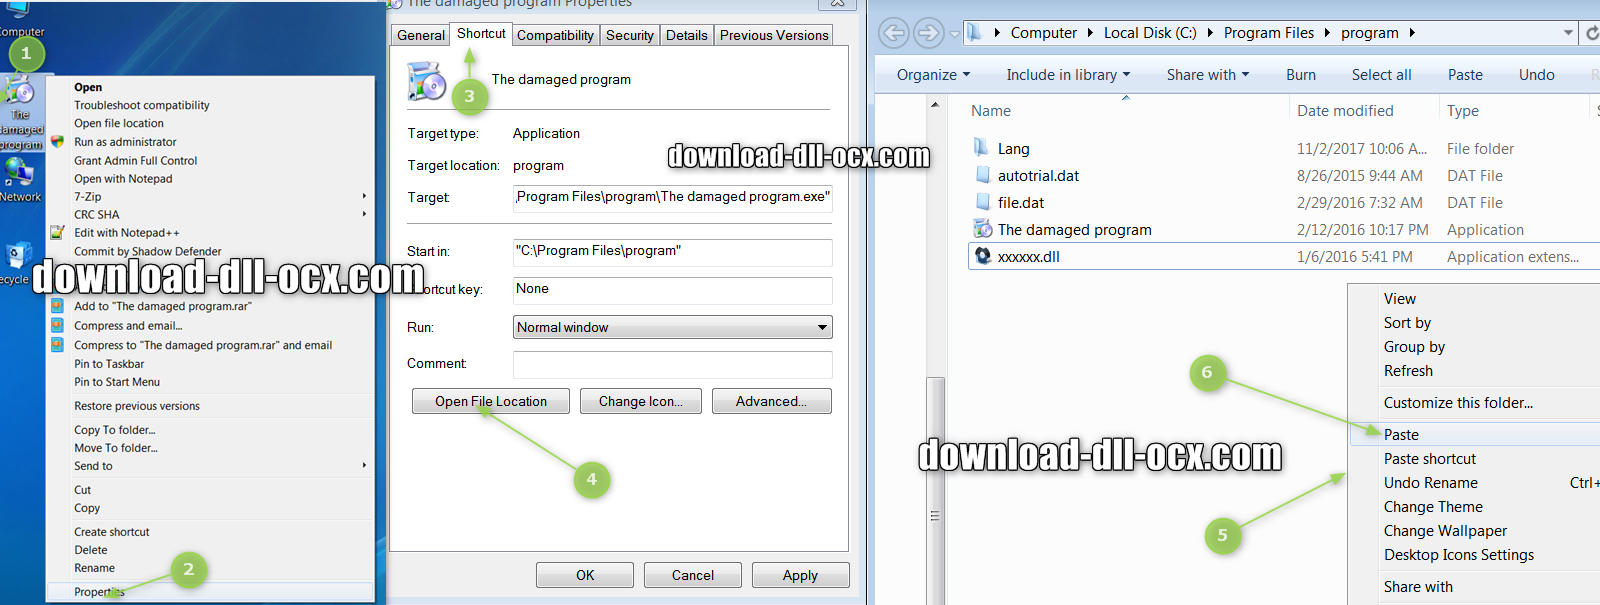 how to install ProductRegCom.dll file? for fix missing